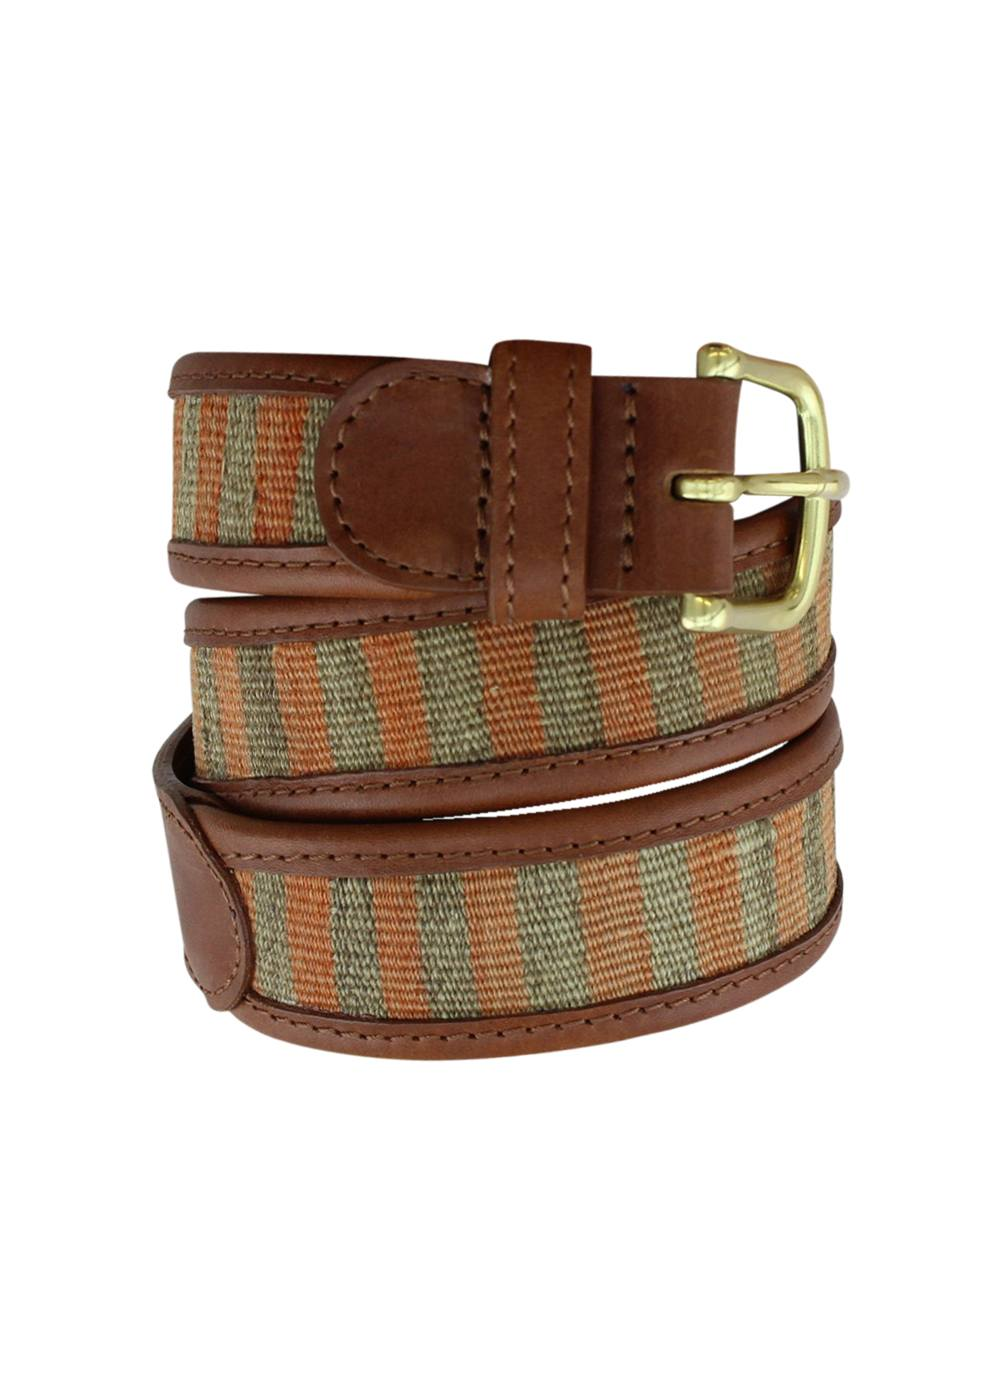 Accessories - Kilim Belt - Size 34